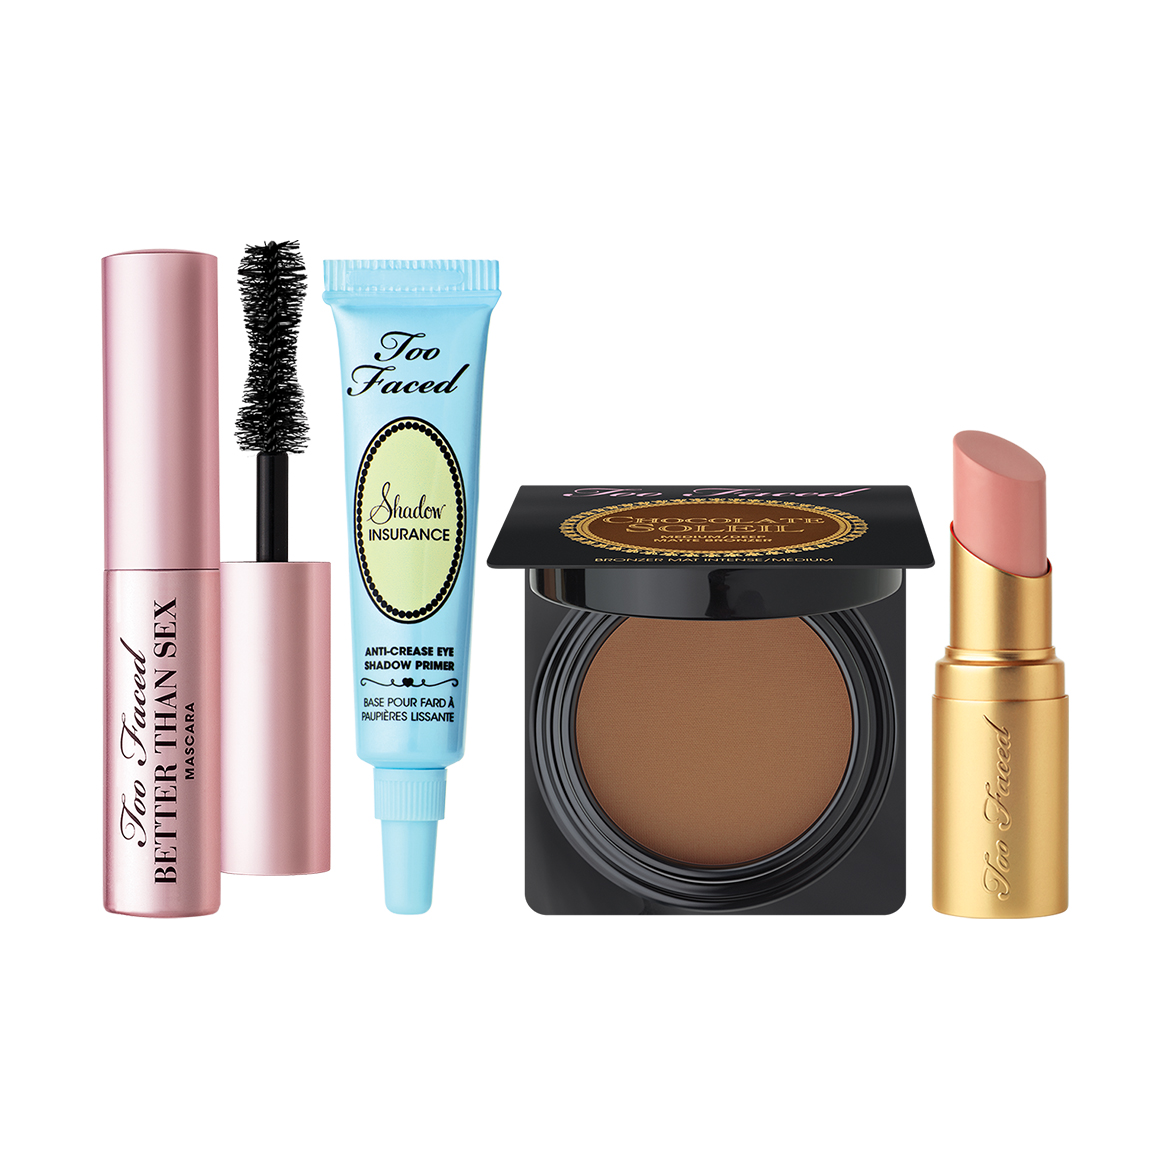 Makeup And Cosmetics Sale Too Faced Beauty Expert Darlings Travel Set